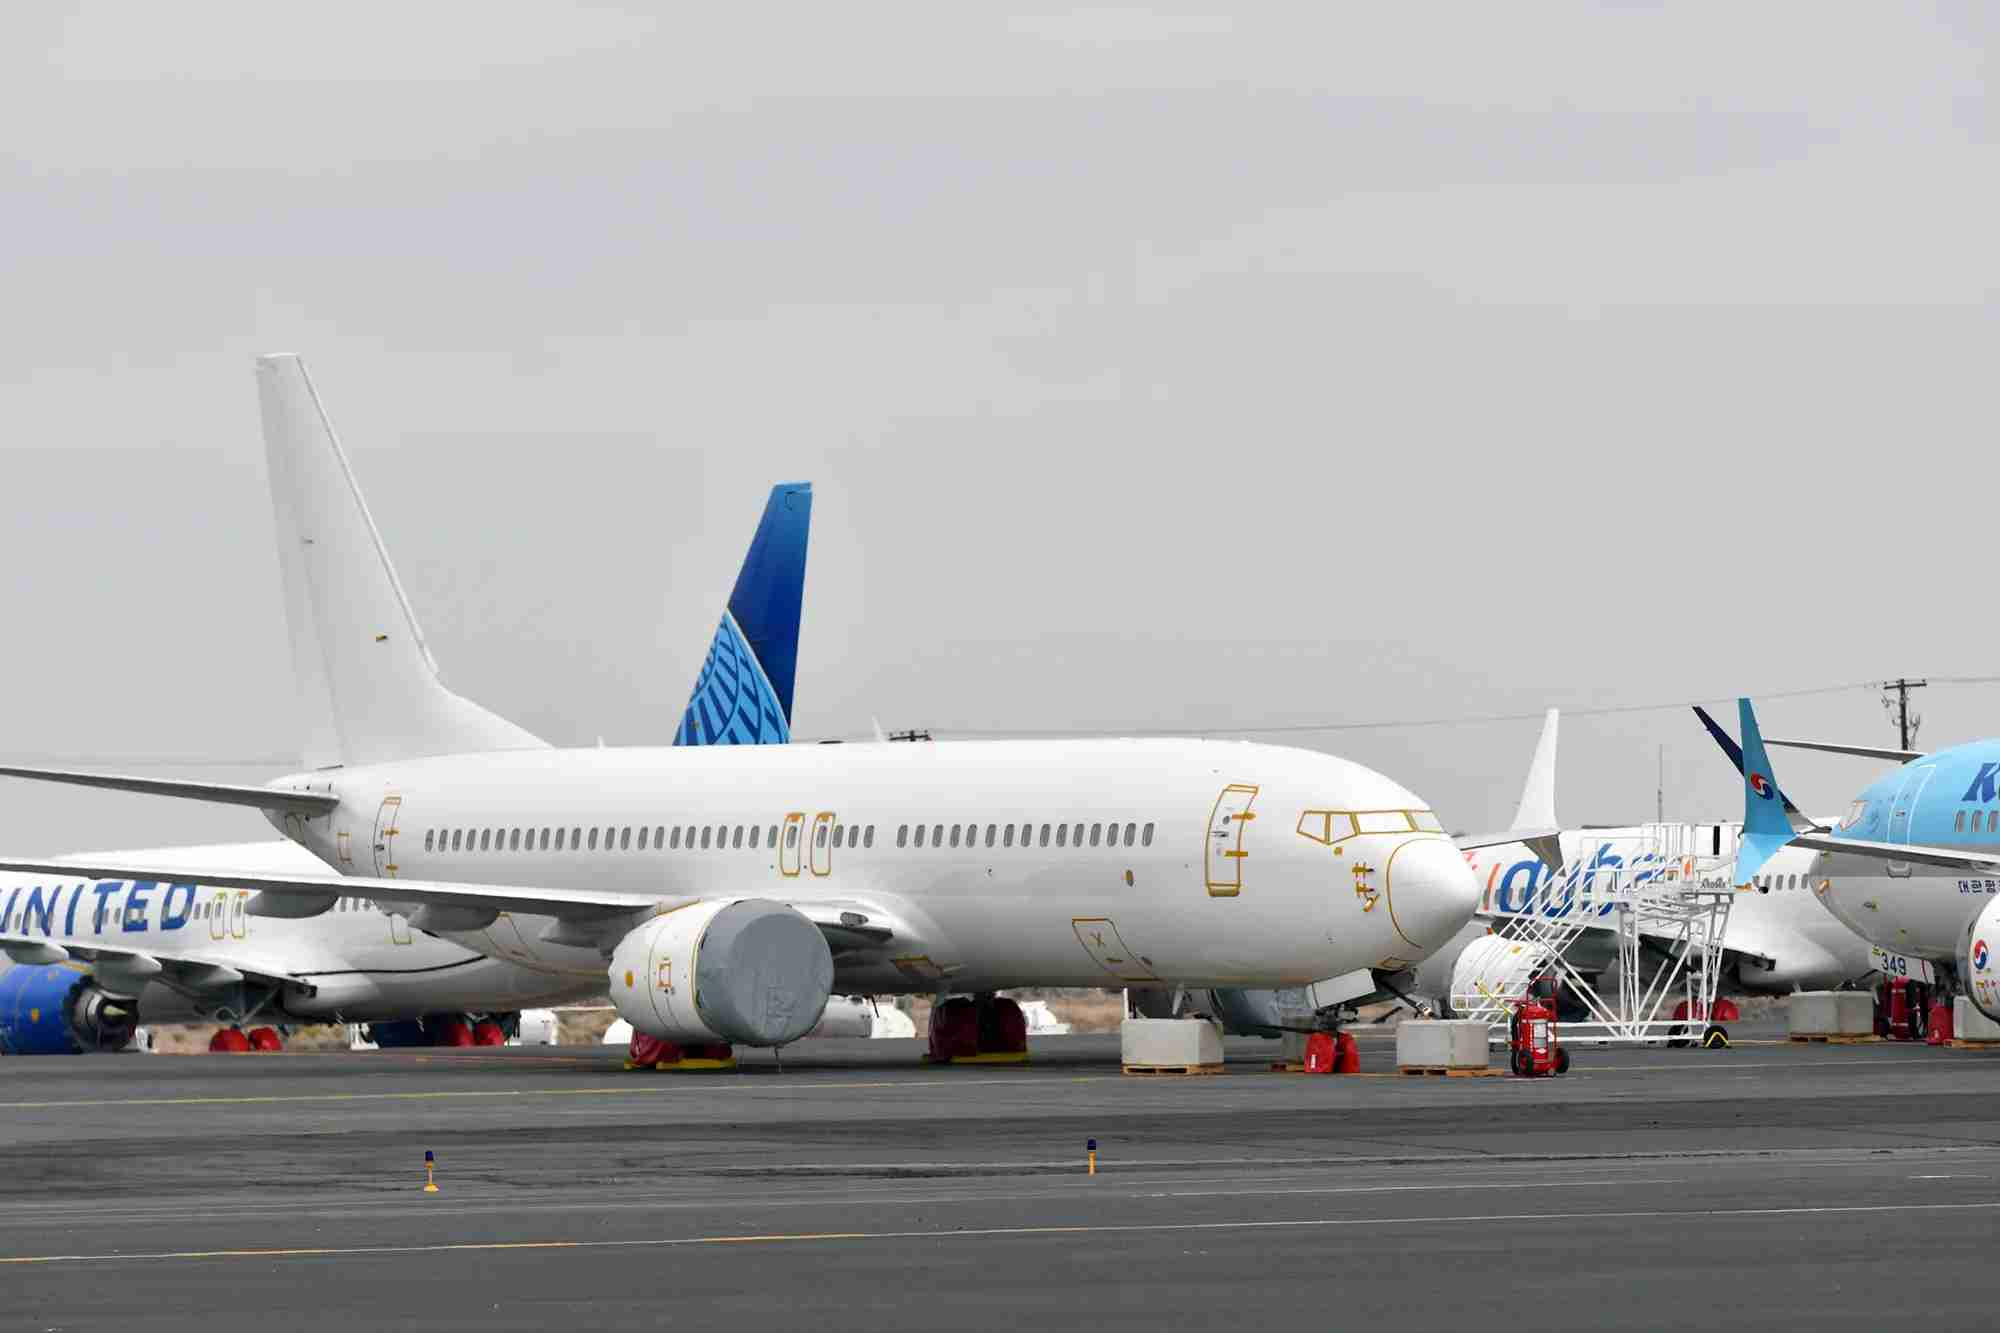 Boeing 737 MAXes grounded in Moses Lake, WA, in October 2019. (Photo by Alberto Riva/TPG)